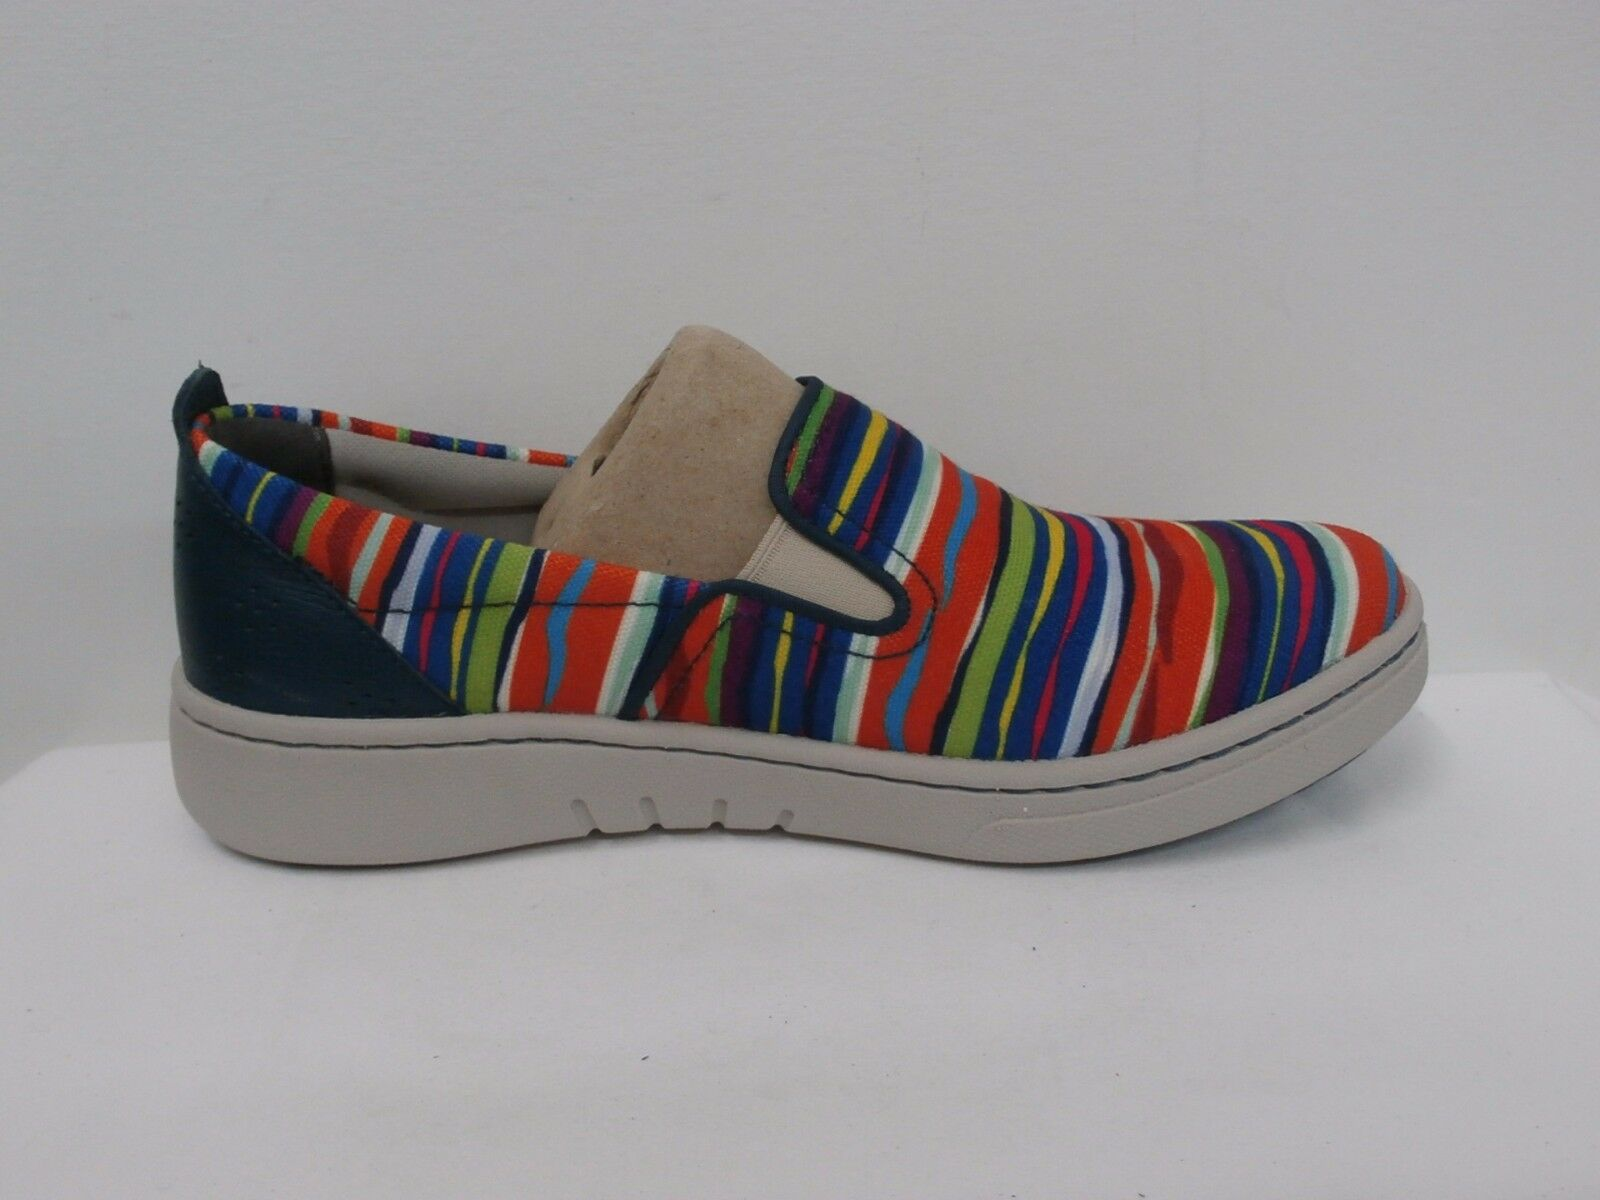 Dansko Canvas Twin Gore Slip-on Sneakers - Belle Canvas MULTI STRIPE Size 37